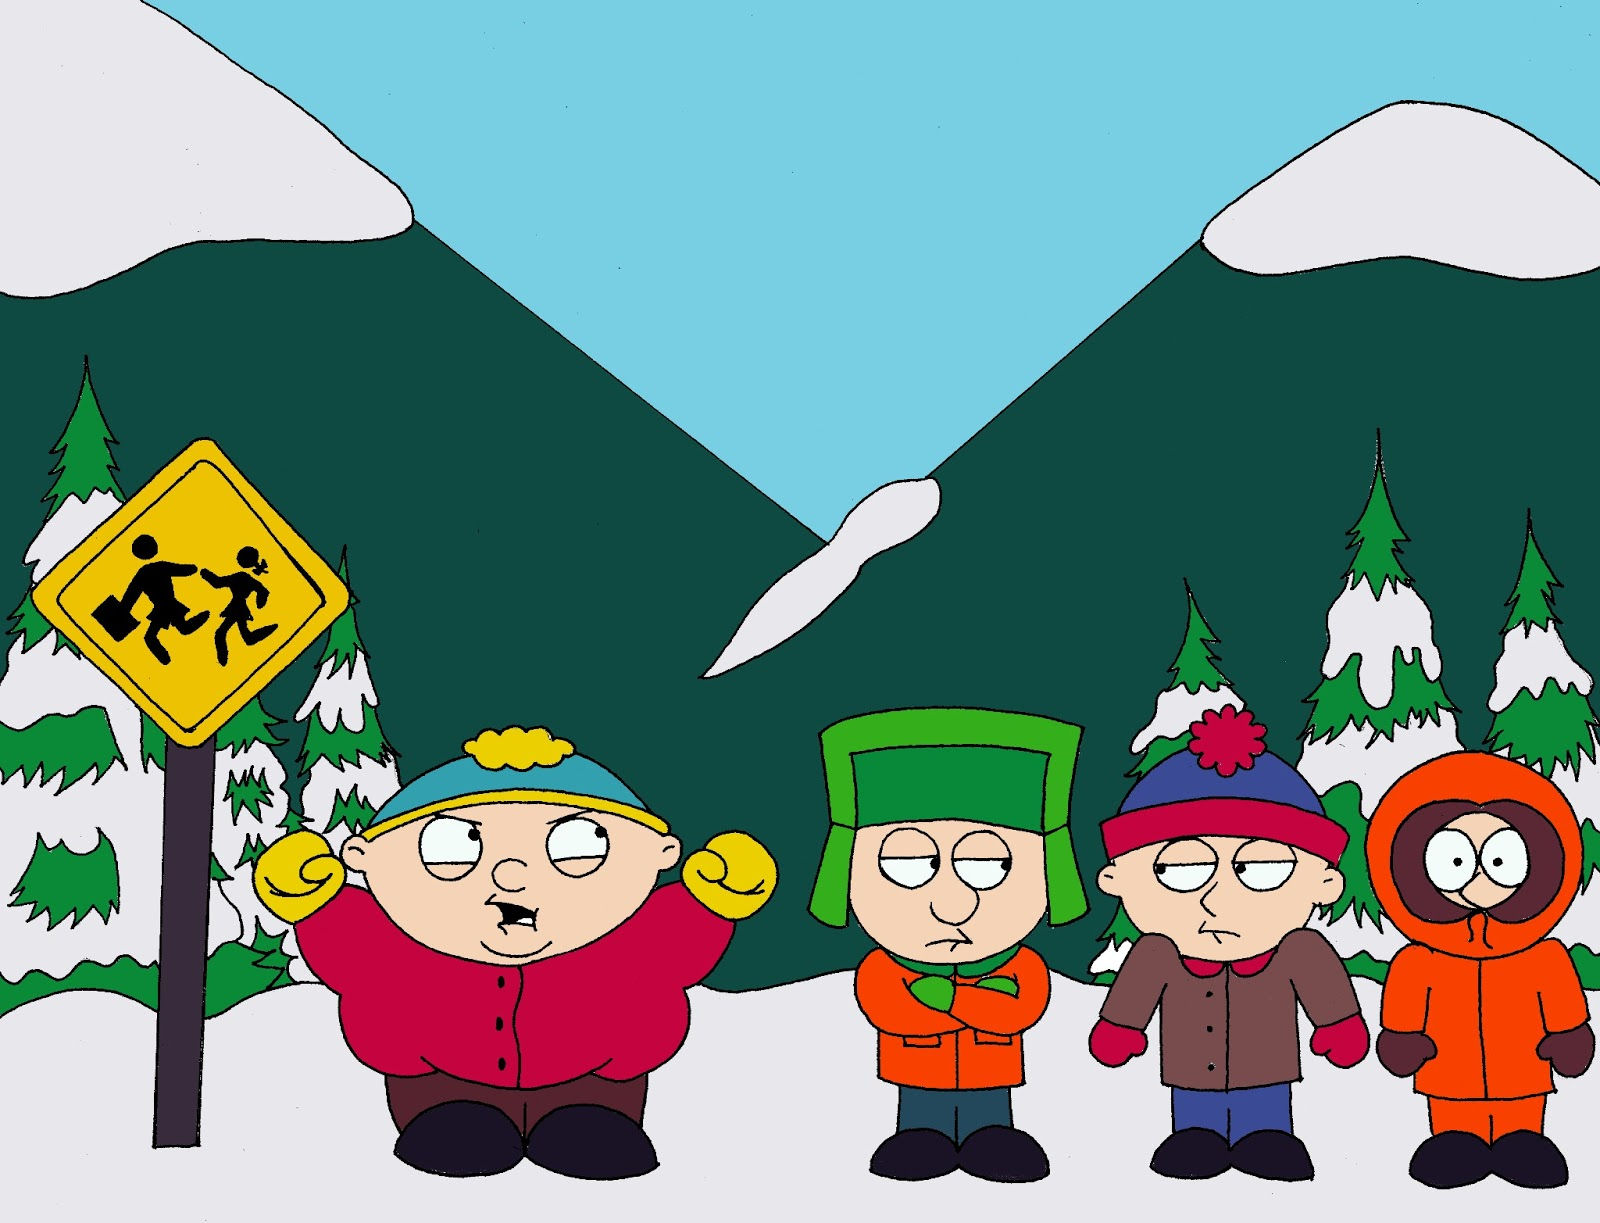 http://4.bp.blogspot.com/-yhd7m-39qhY/UPKHdlhVOVI/AAAAAAAAFds/oXXavgL-SUE/s1600/South_Park_Drawing+hd+wallpapers.jpg